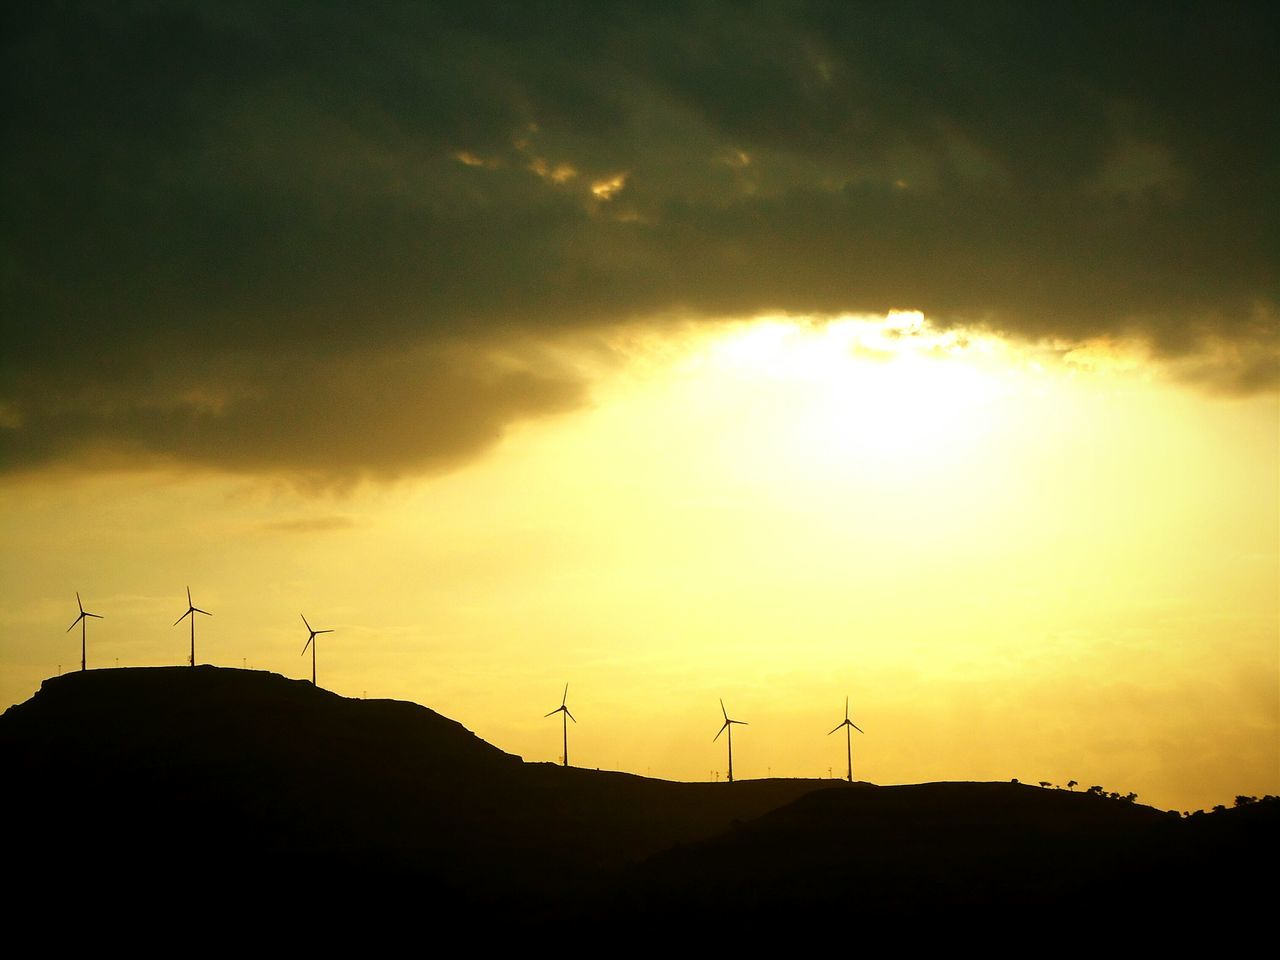 Silhouette Windmills On Field Against Cloudy Sky During Sunset